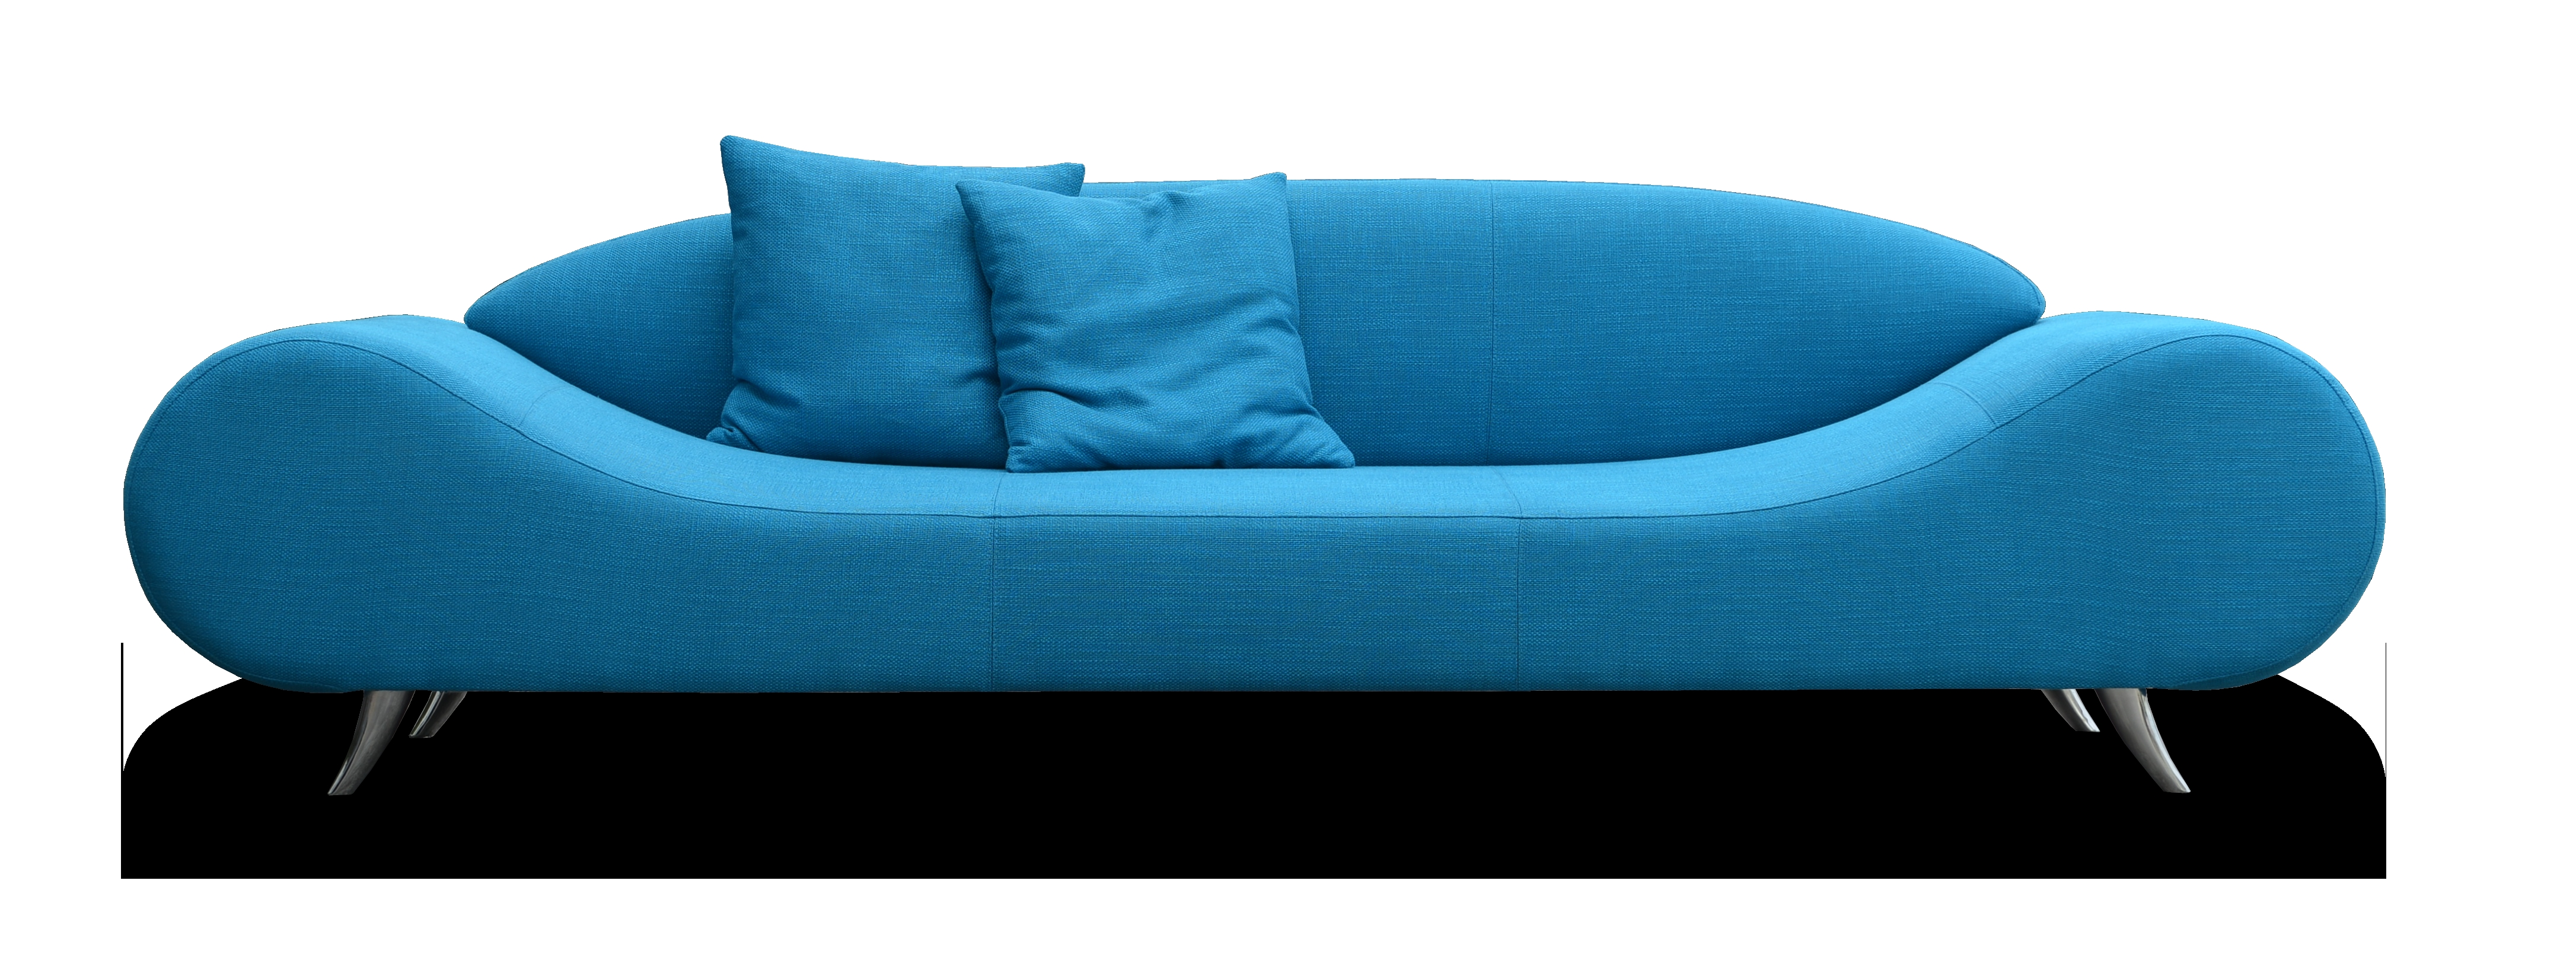 Beautiful Turquoise Sofa Bed Pictures Design Ideas Collections Within Blue Sofa Chairs (Image 2 of 15)